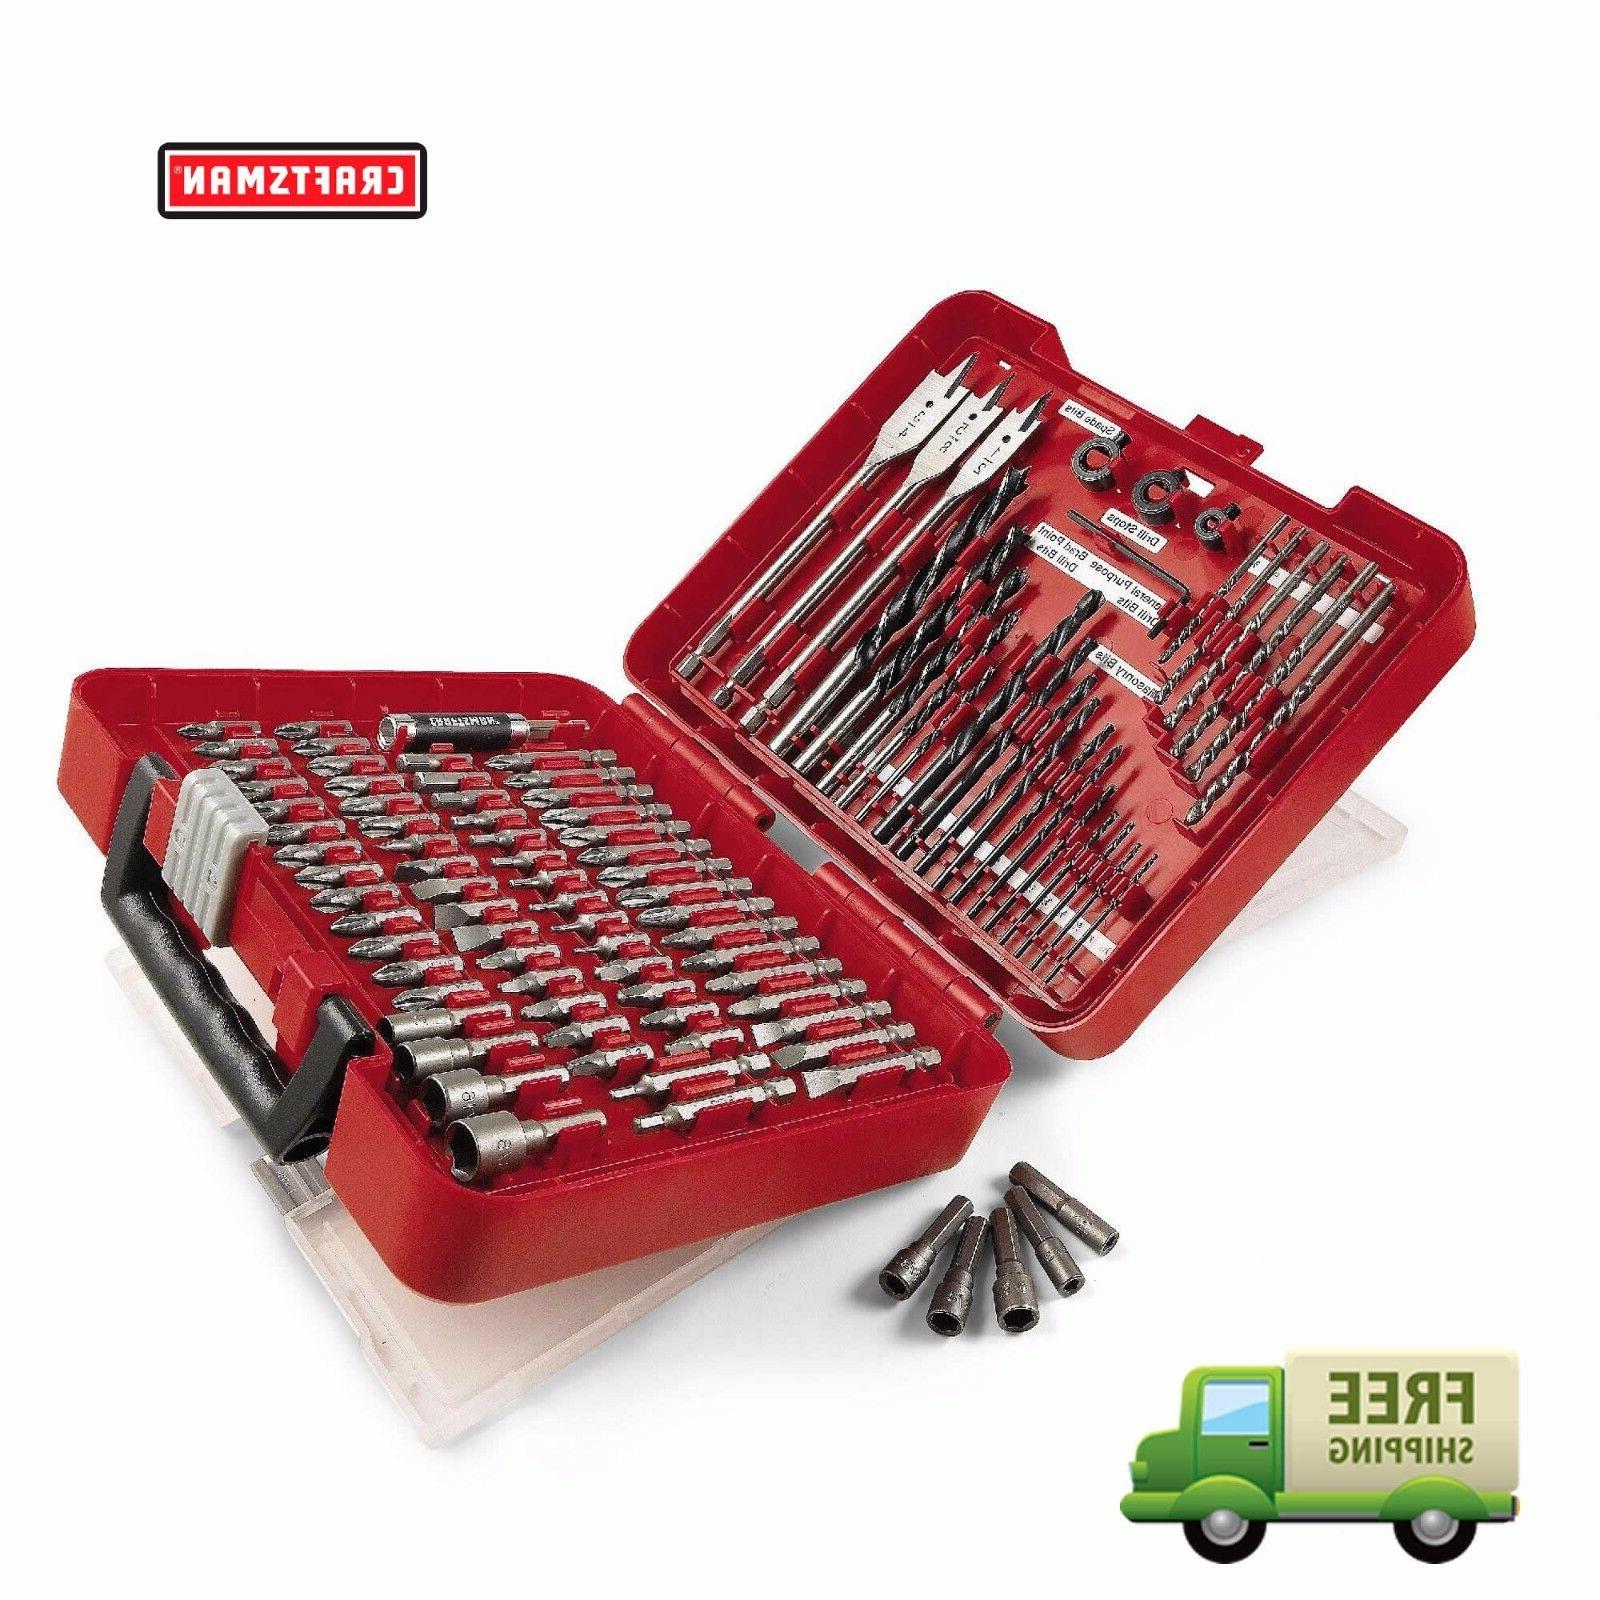 New Kit Drill Driver Screw Tools Case 31639